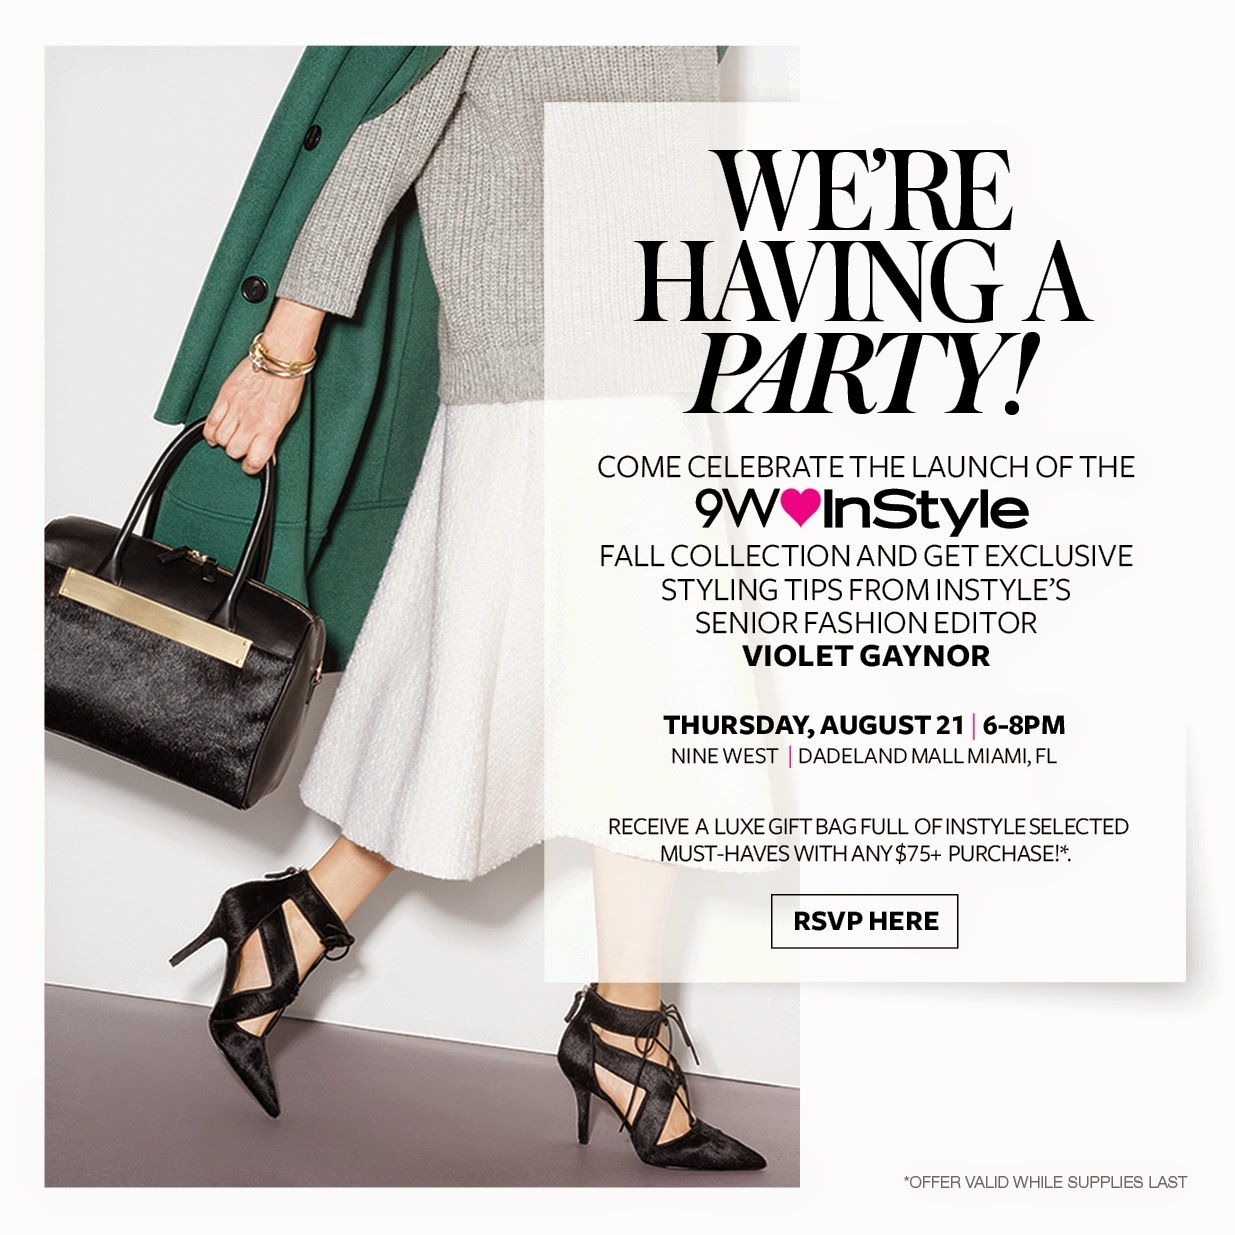 NineWest_miami@timeinc.com